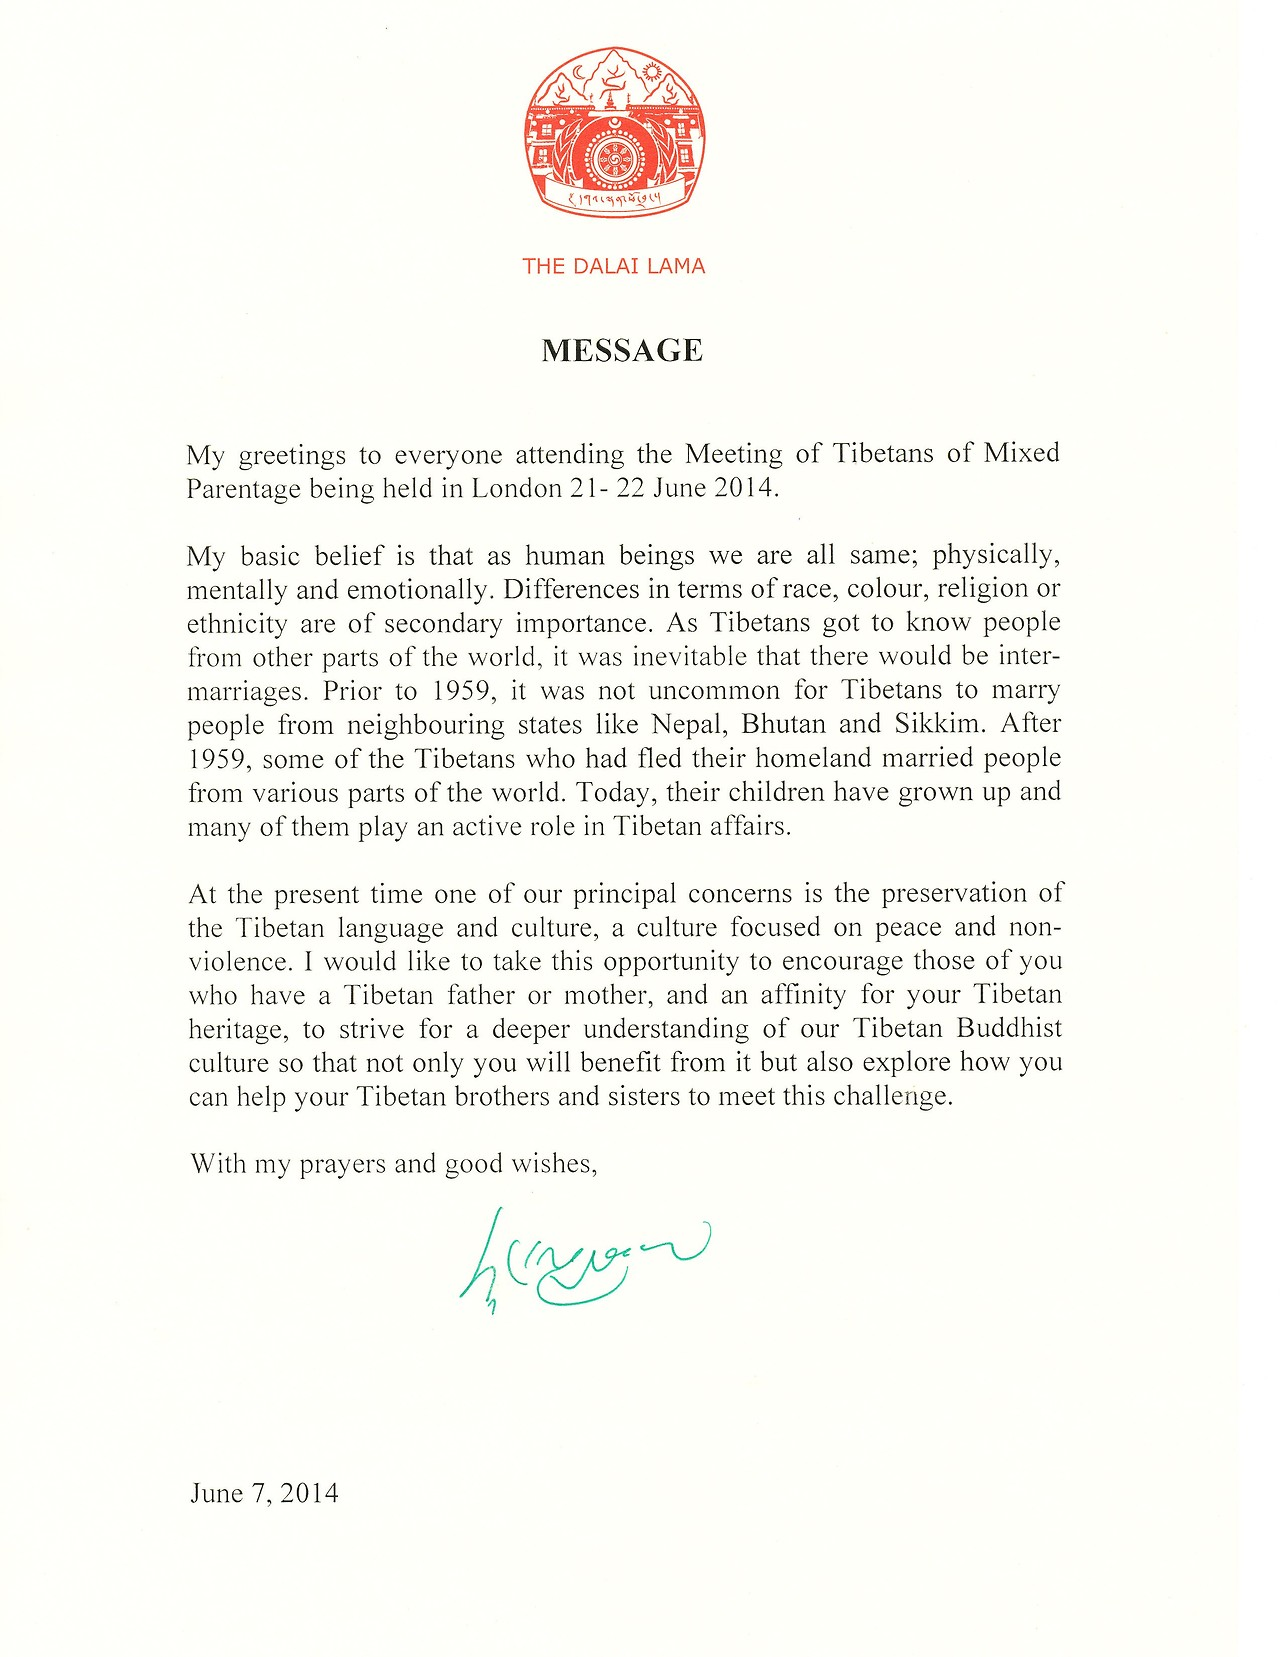 MESSAGE: My greetings to everyone attending the Meeting of Tibetans of Mixed Parentage being held in London 21-22 June 2014. My basic belief is that as human beings we are all the same; physically, mentally and emotionally. Differences in terms of race, colour, religion or ethnicity are of secondary importance. As Tibetans got to know people from other parts of the world, it was inevitable that there would be inter-marriages. Prior to 1959, it was not uncommon for Tibetans to marry people from neighbouring states like Nepal, Bhutan and Sikkim. After 1959, some of the Tibetans who had fled their homeland married people from various parts of the world. Today, their children have grown up and many of them play an active role in Tibetan affairs. At the present time one of our principal concerns is the preservation of the Tibetan language and culture, a culture focused on peace and non-violance. I would like to take this opportunity to encourage those of you who have a Tibetan father or mother, and an affinity for your Tibetan heritage, to strive for a deeper understanding of our Tibetan Buddhist culture so that not only you will benefit from it but also explore how you can help your Tibetan brothers and sisters to meet this challenge. With my prayers and good wishes, June 7, 2014